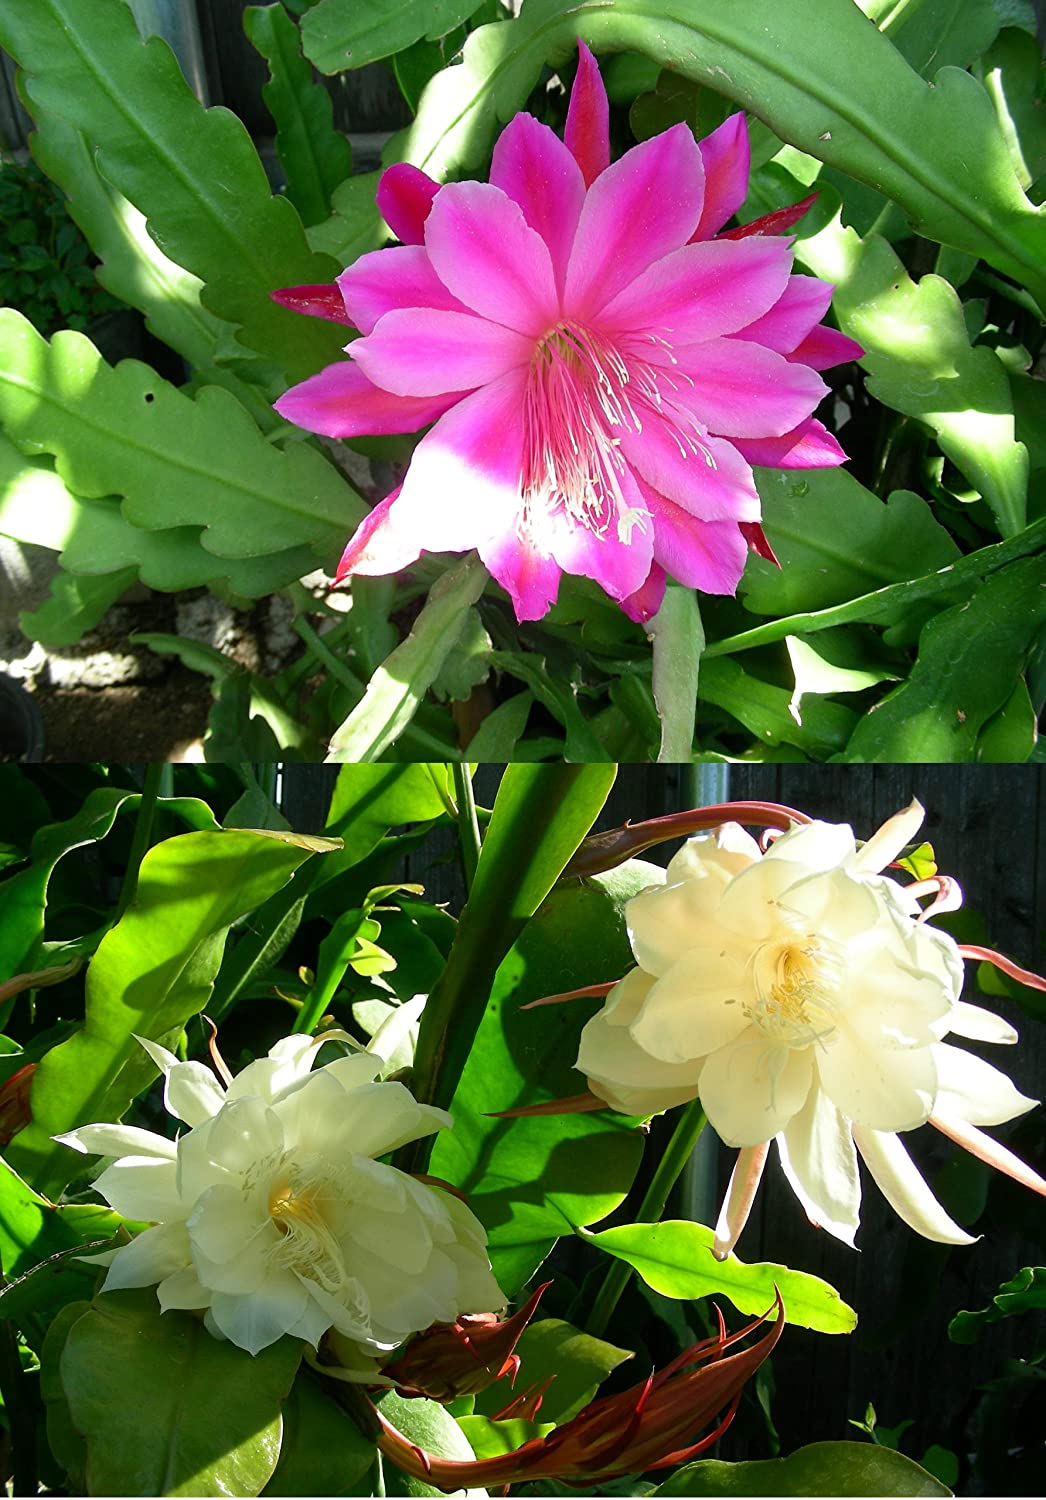 Amazon 2 cuttings orchid cactus epiphyllum oxypetalum one amazon 2 cuttings orchid cactus epiphyllum oxypetalum one pink and one white succulent plants garden outdoor mightylinksfo Images